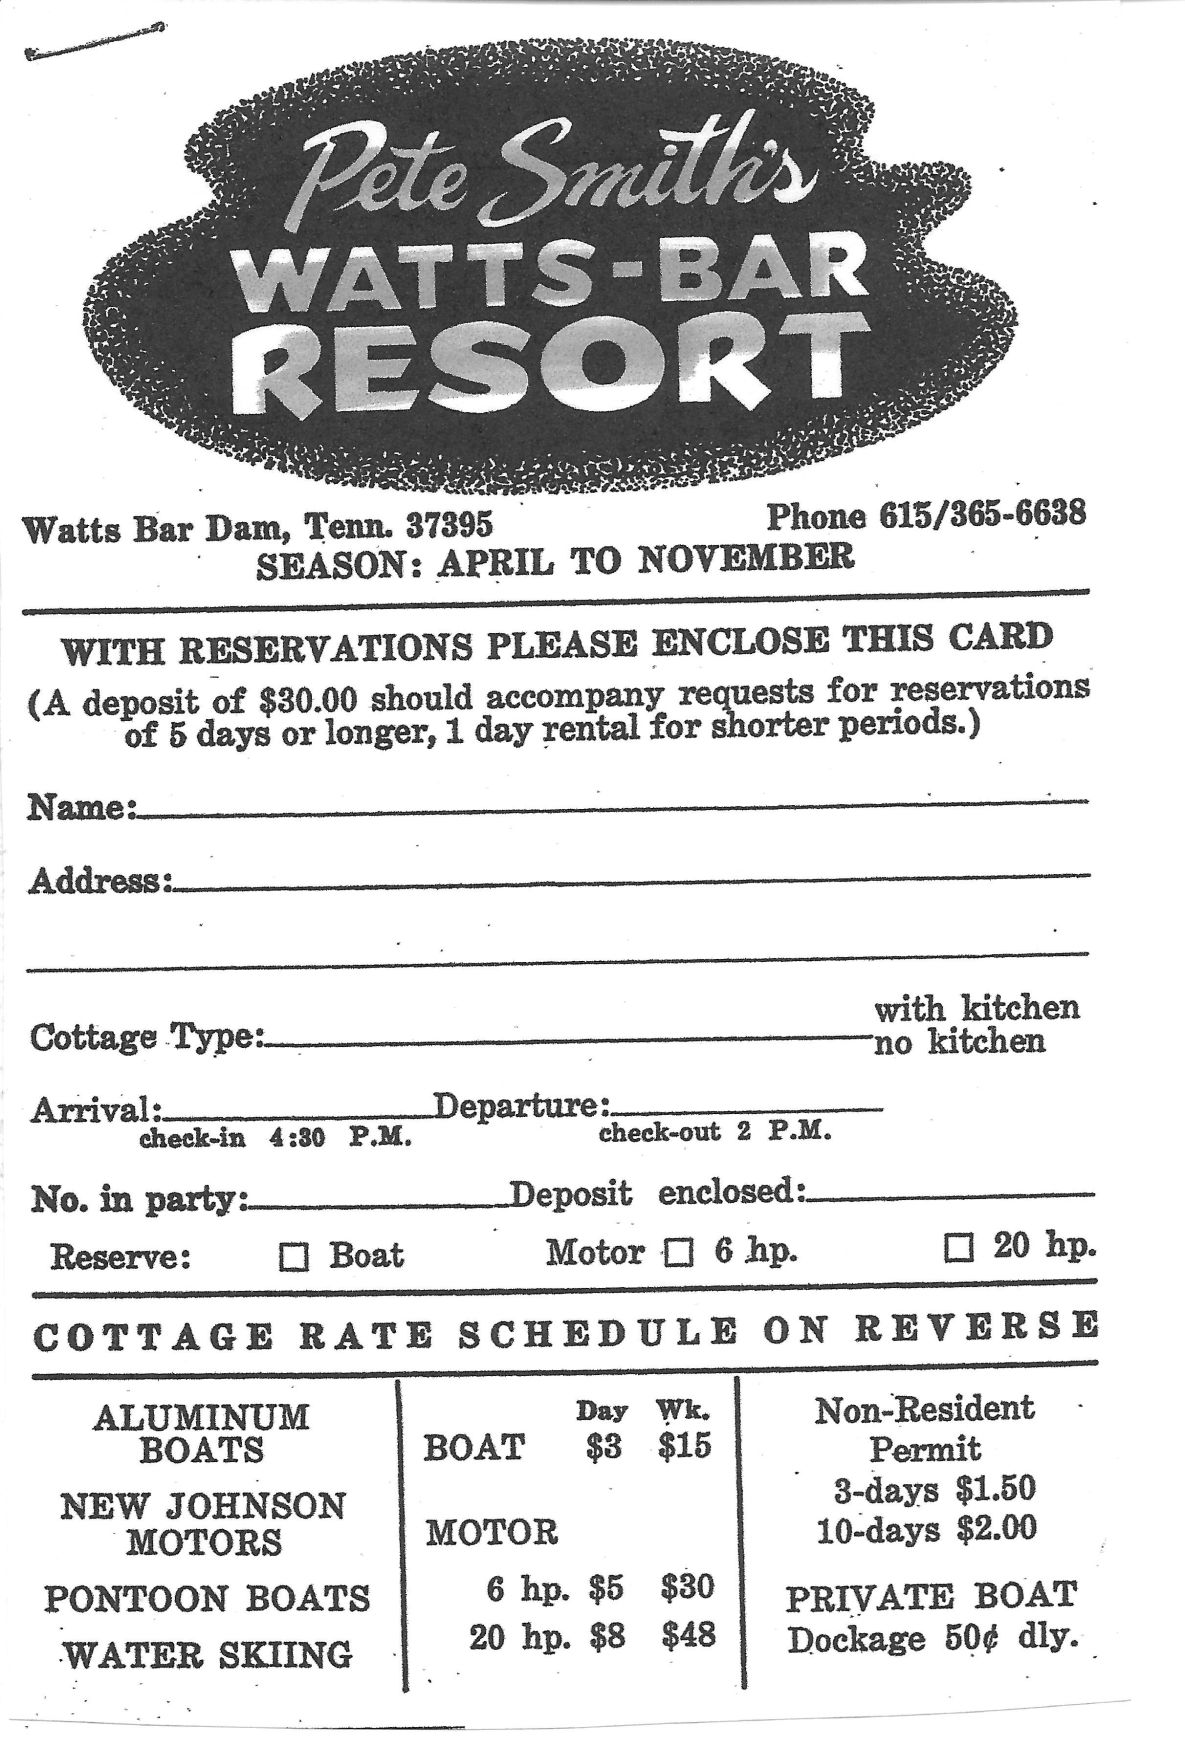 Reservation card for Watts Bar cottages circa 1969